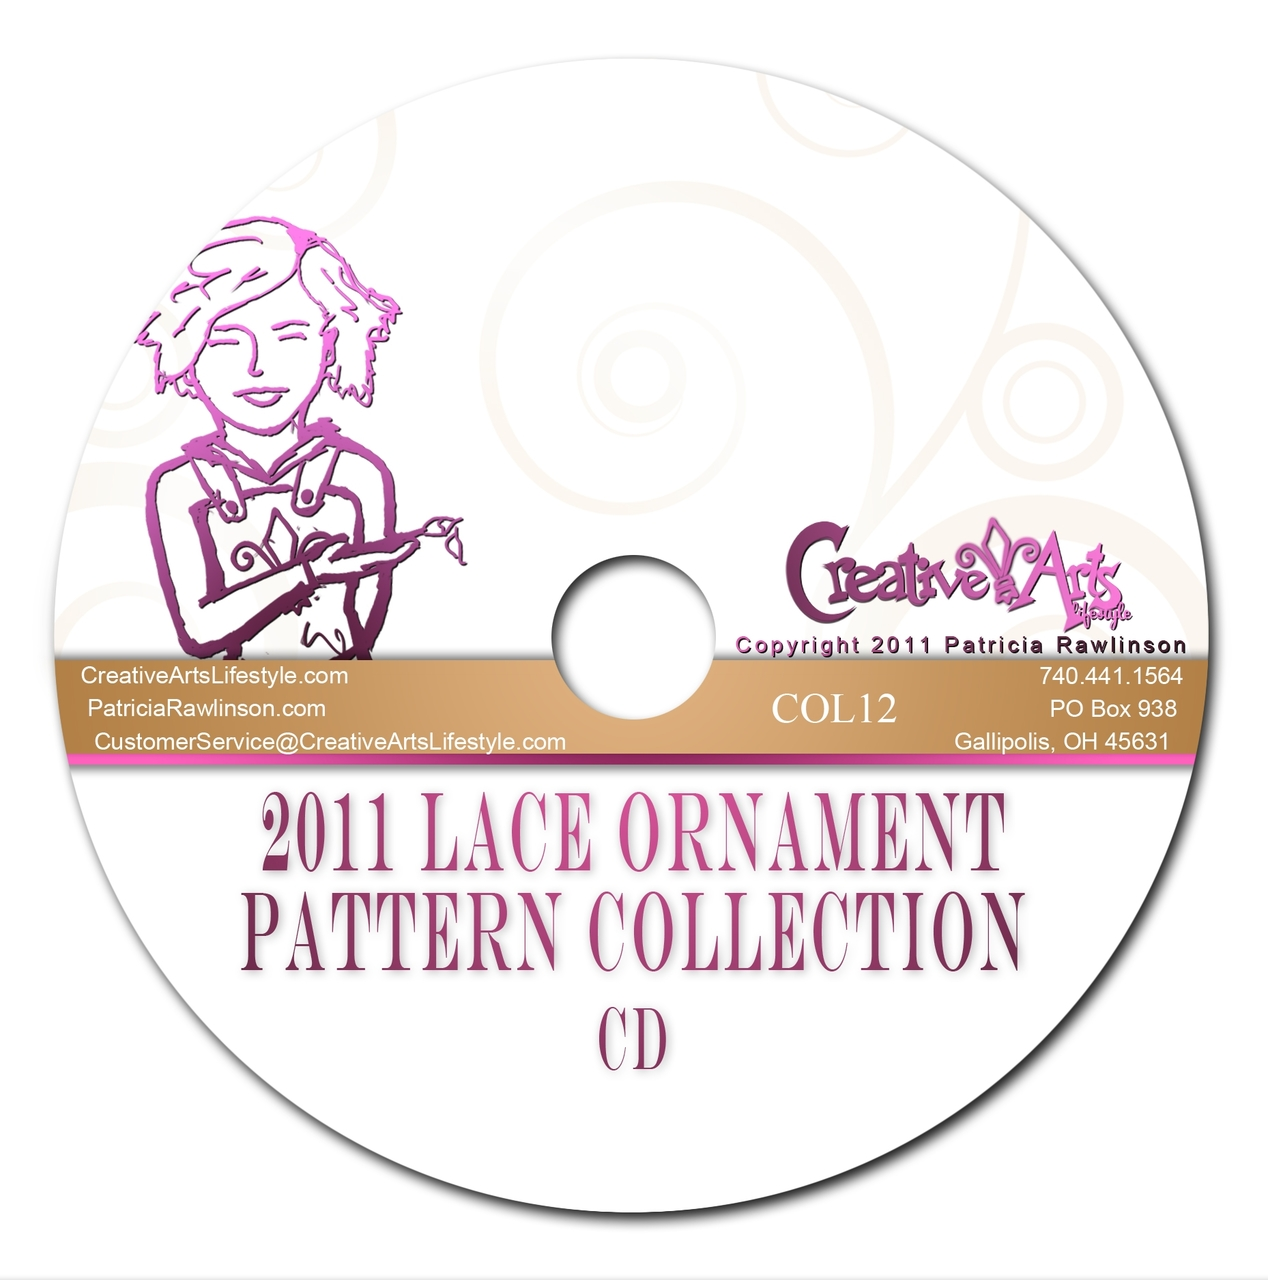 Lace Ornament Pattern Collection